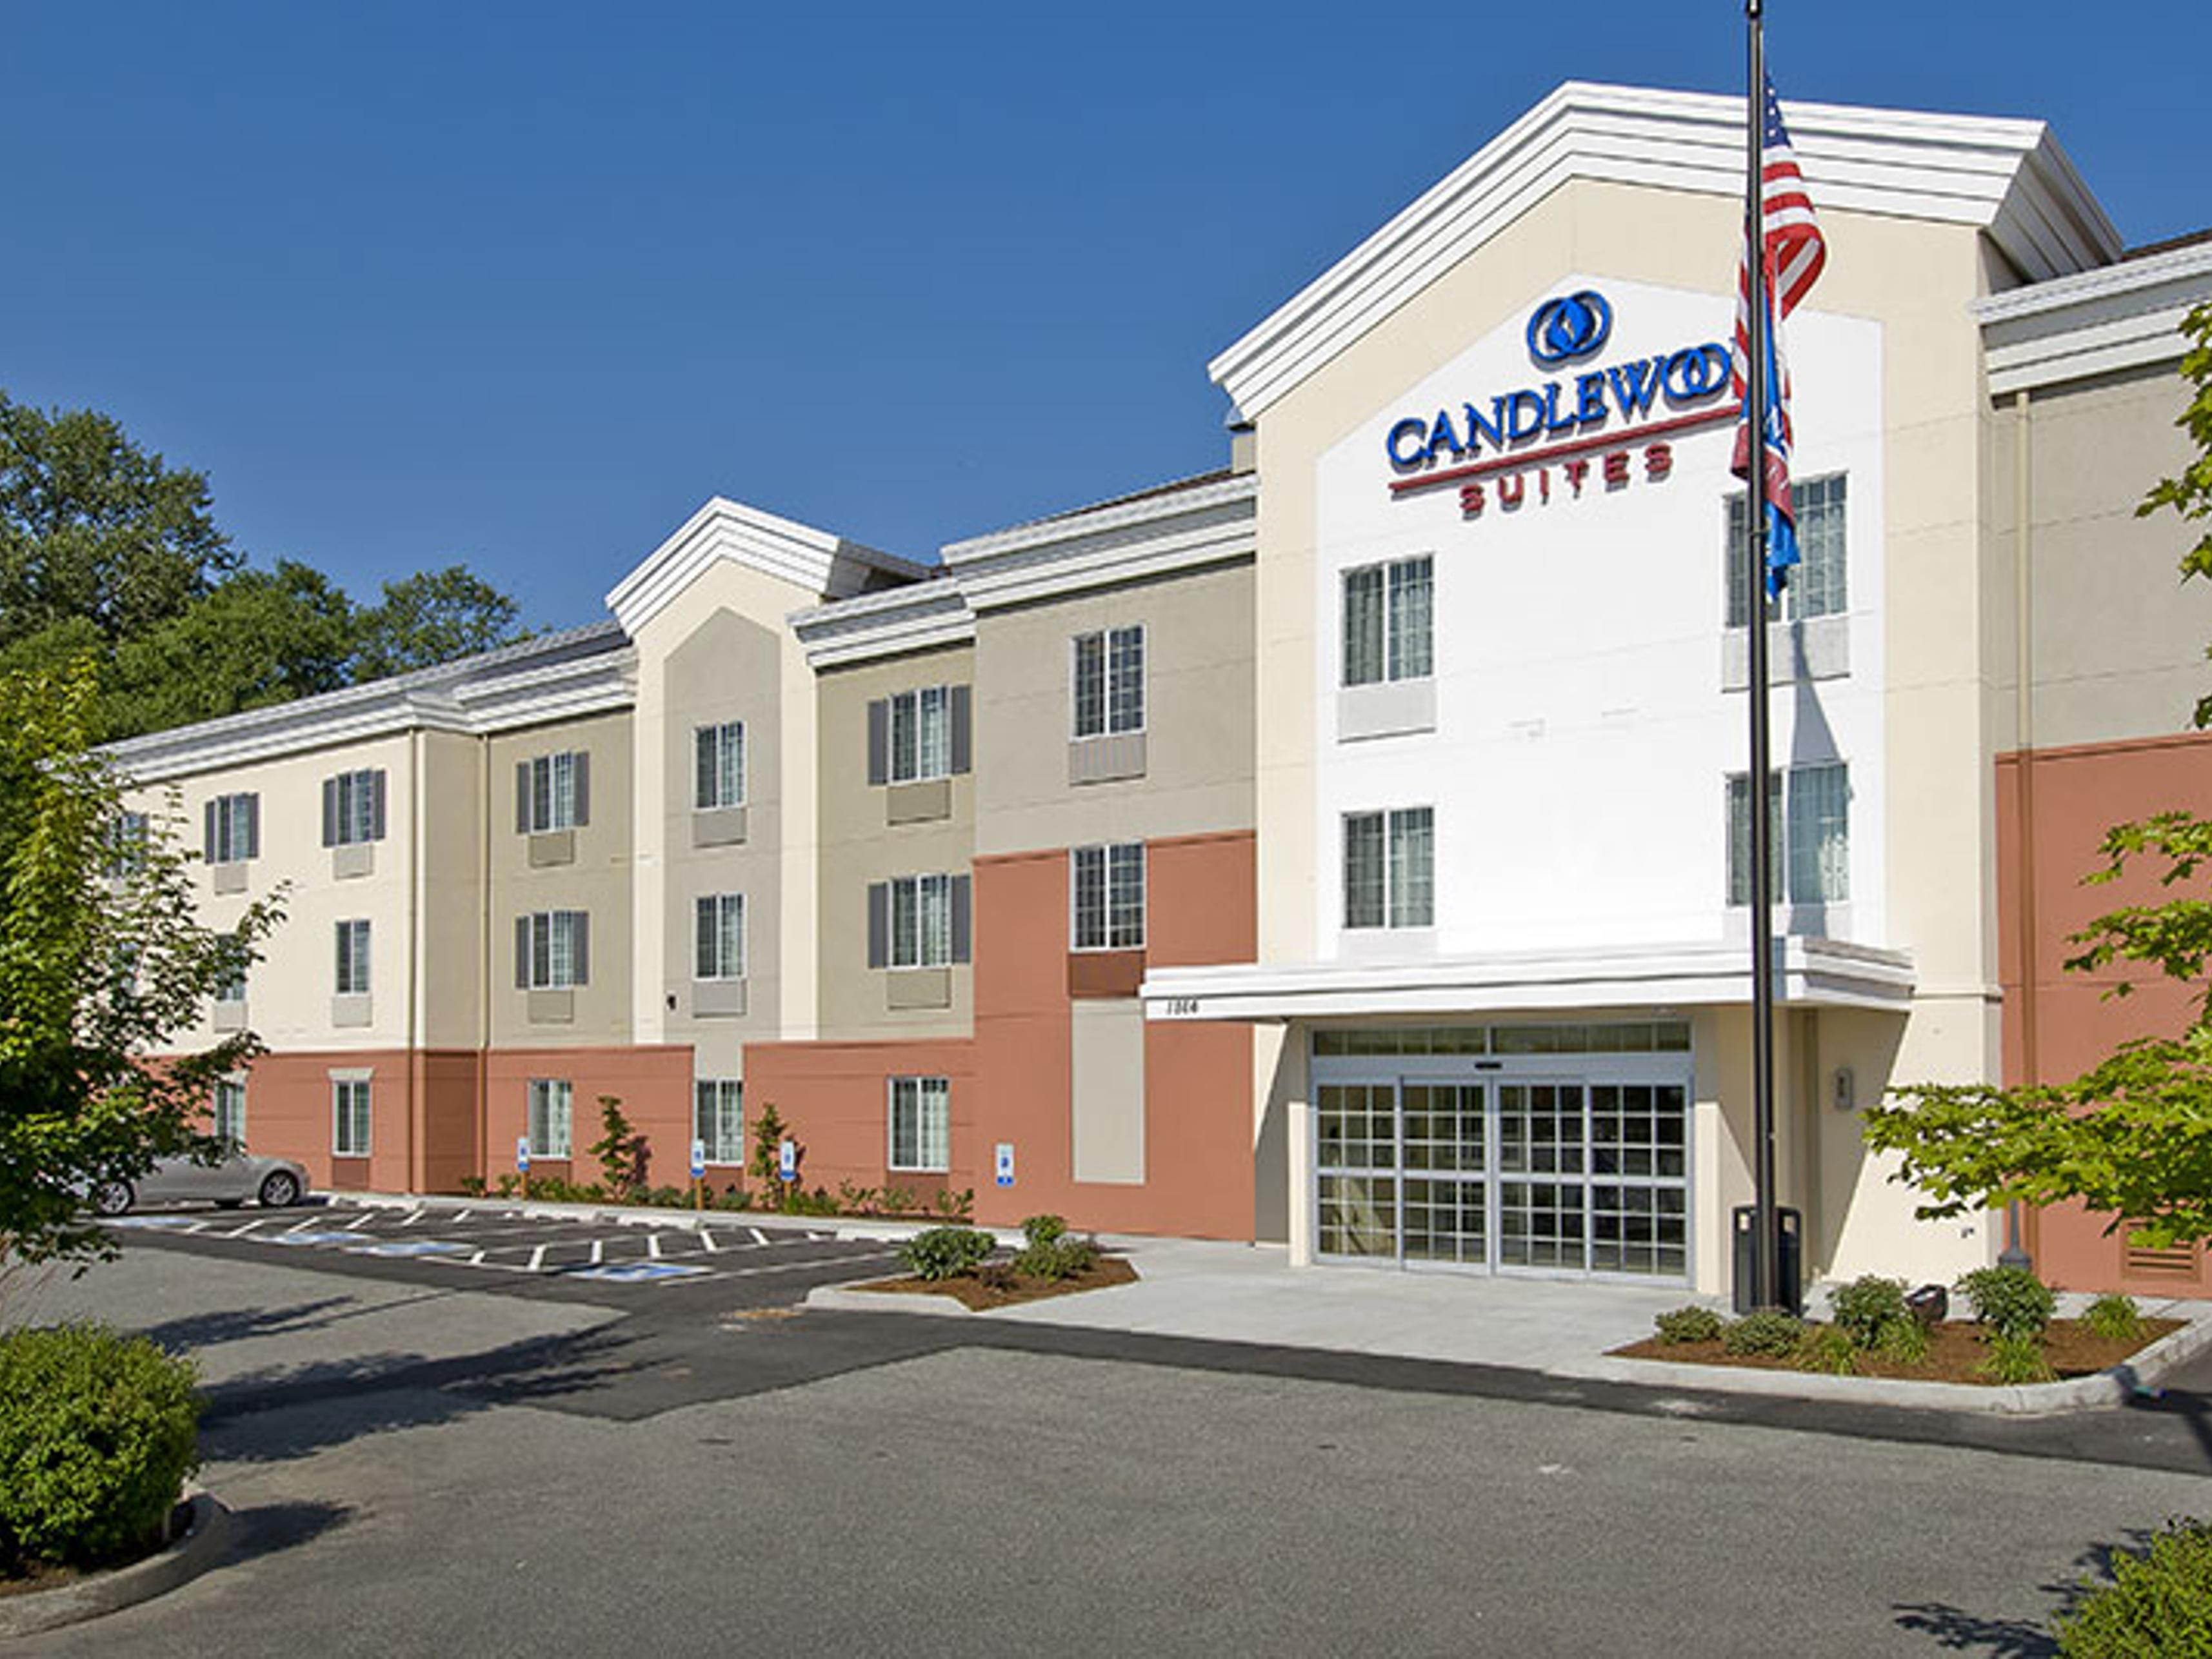 Burlington Hotels Candlewood Suites Extended Stay Hotel In Washington